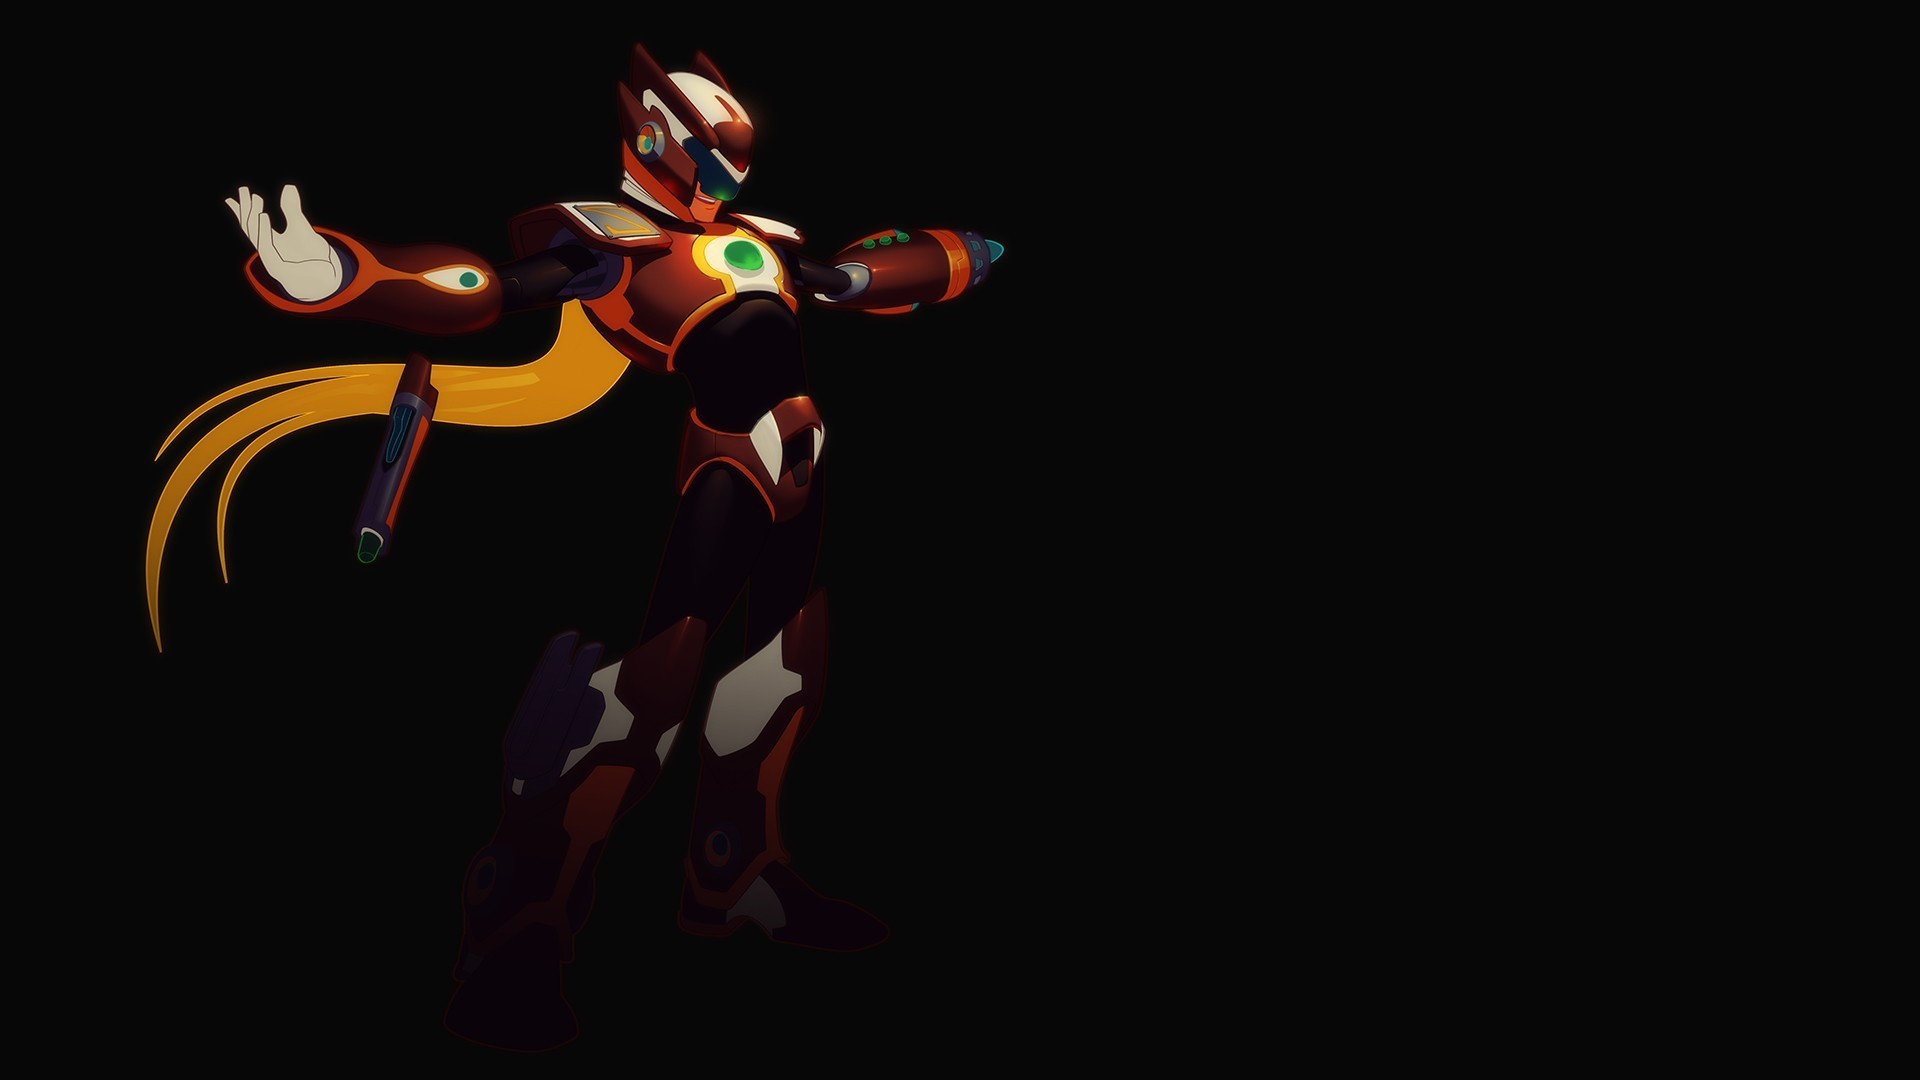 Game Megaman Zero wallpapers and images – wallpapers, pictures, photos